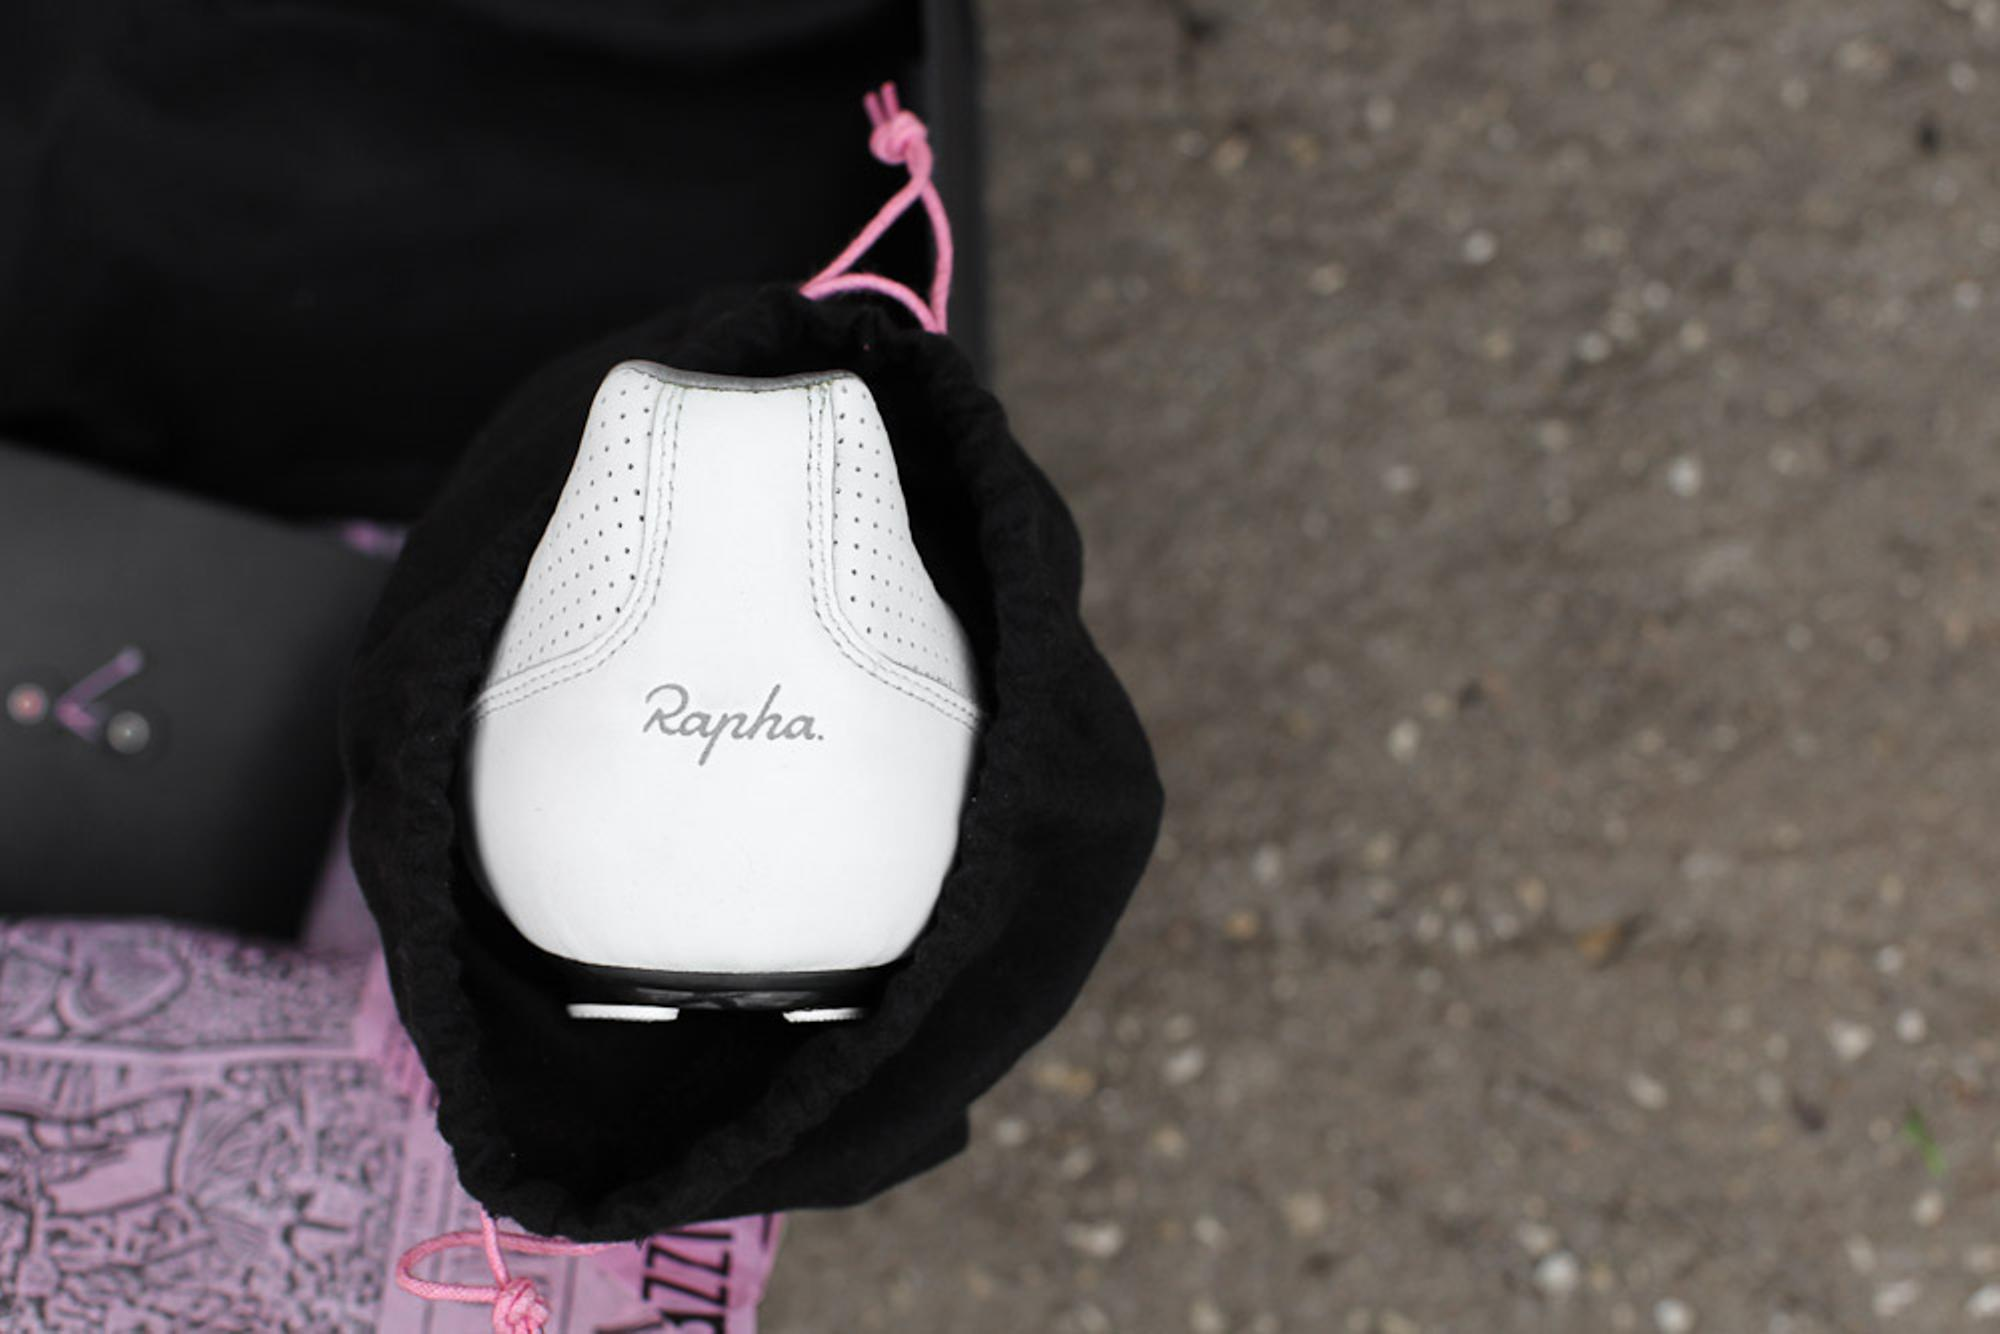 The Rapha logo is printed in 3M reflective paint.